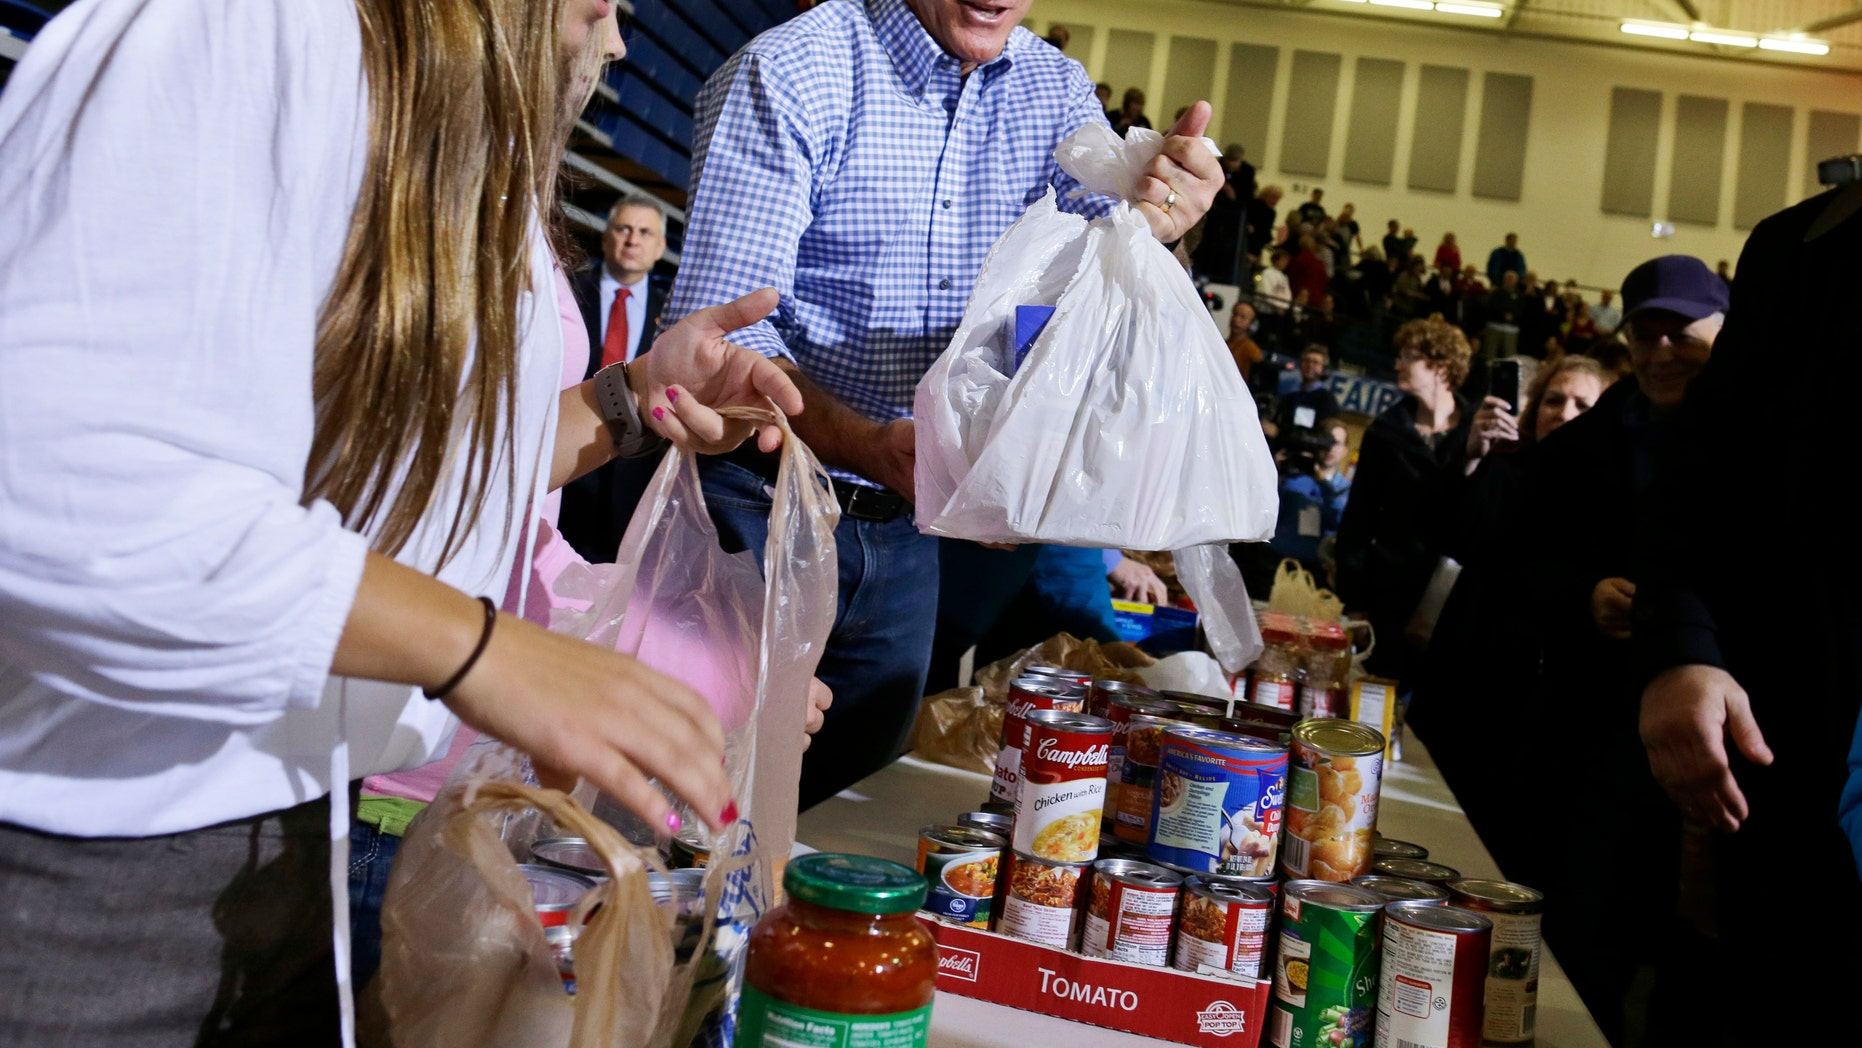 Tuesday, Oct. 30, 2012: Mitt Romney participates in an event to collect supplies for victims of superstorm Sandy, in Kettering, Ohio.